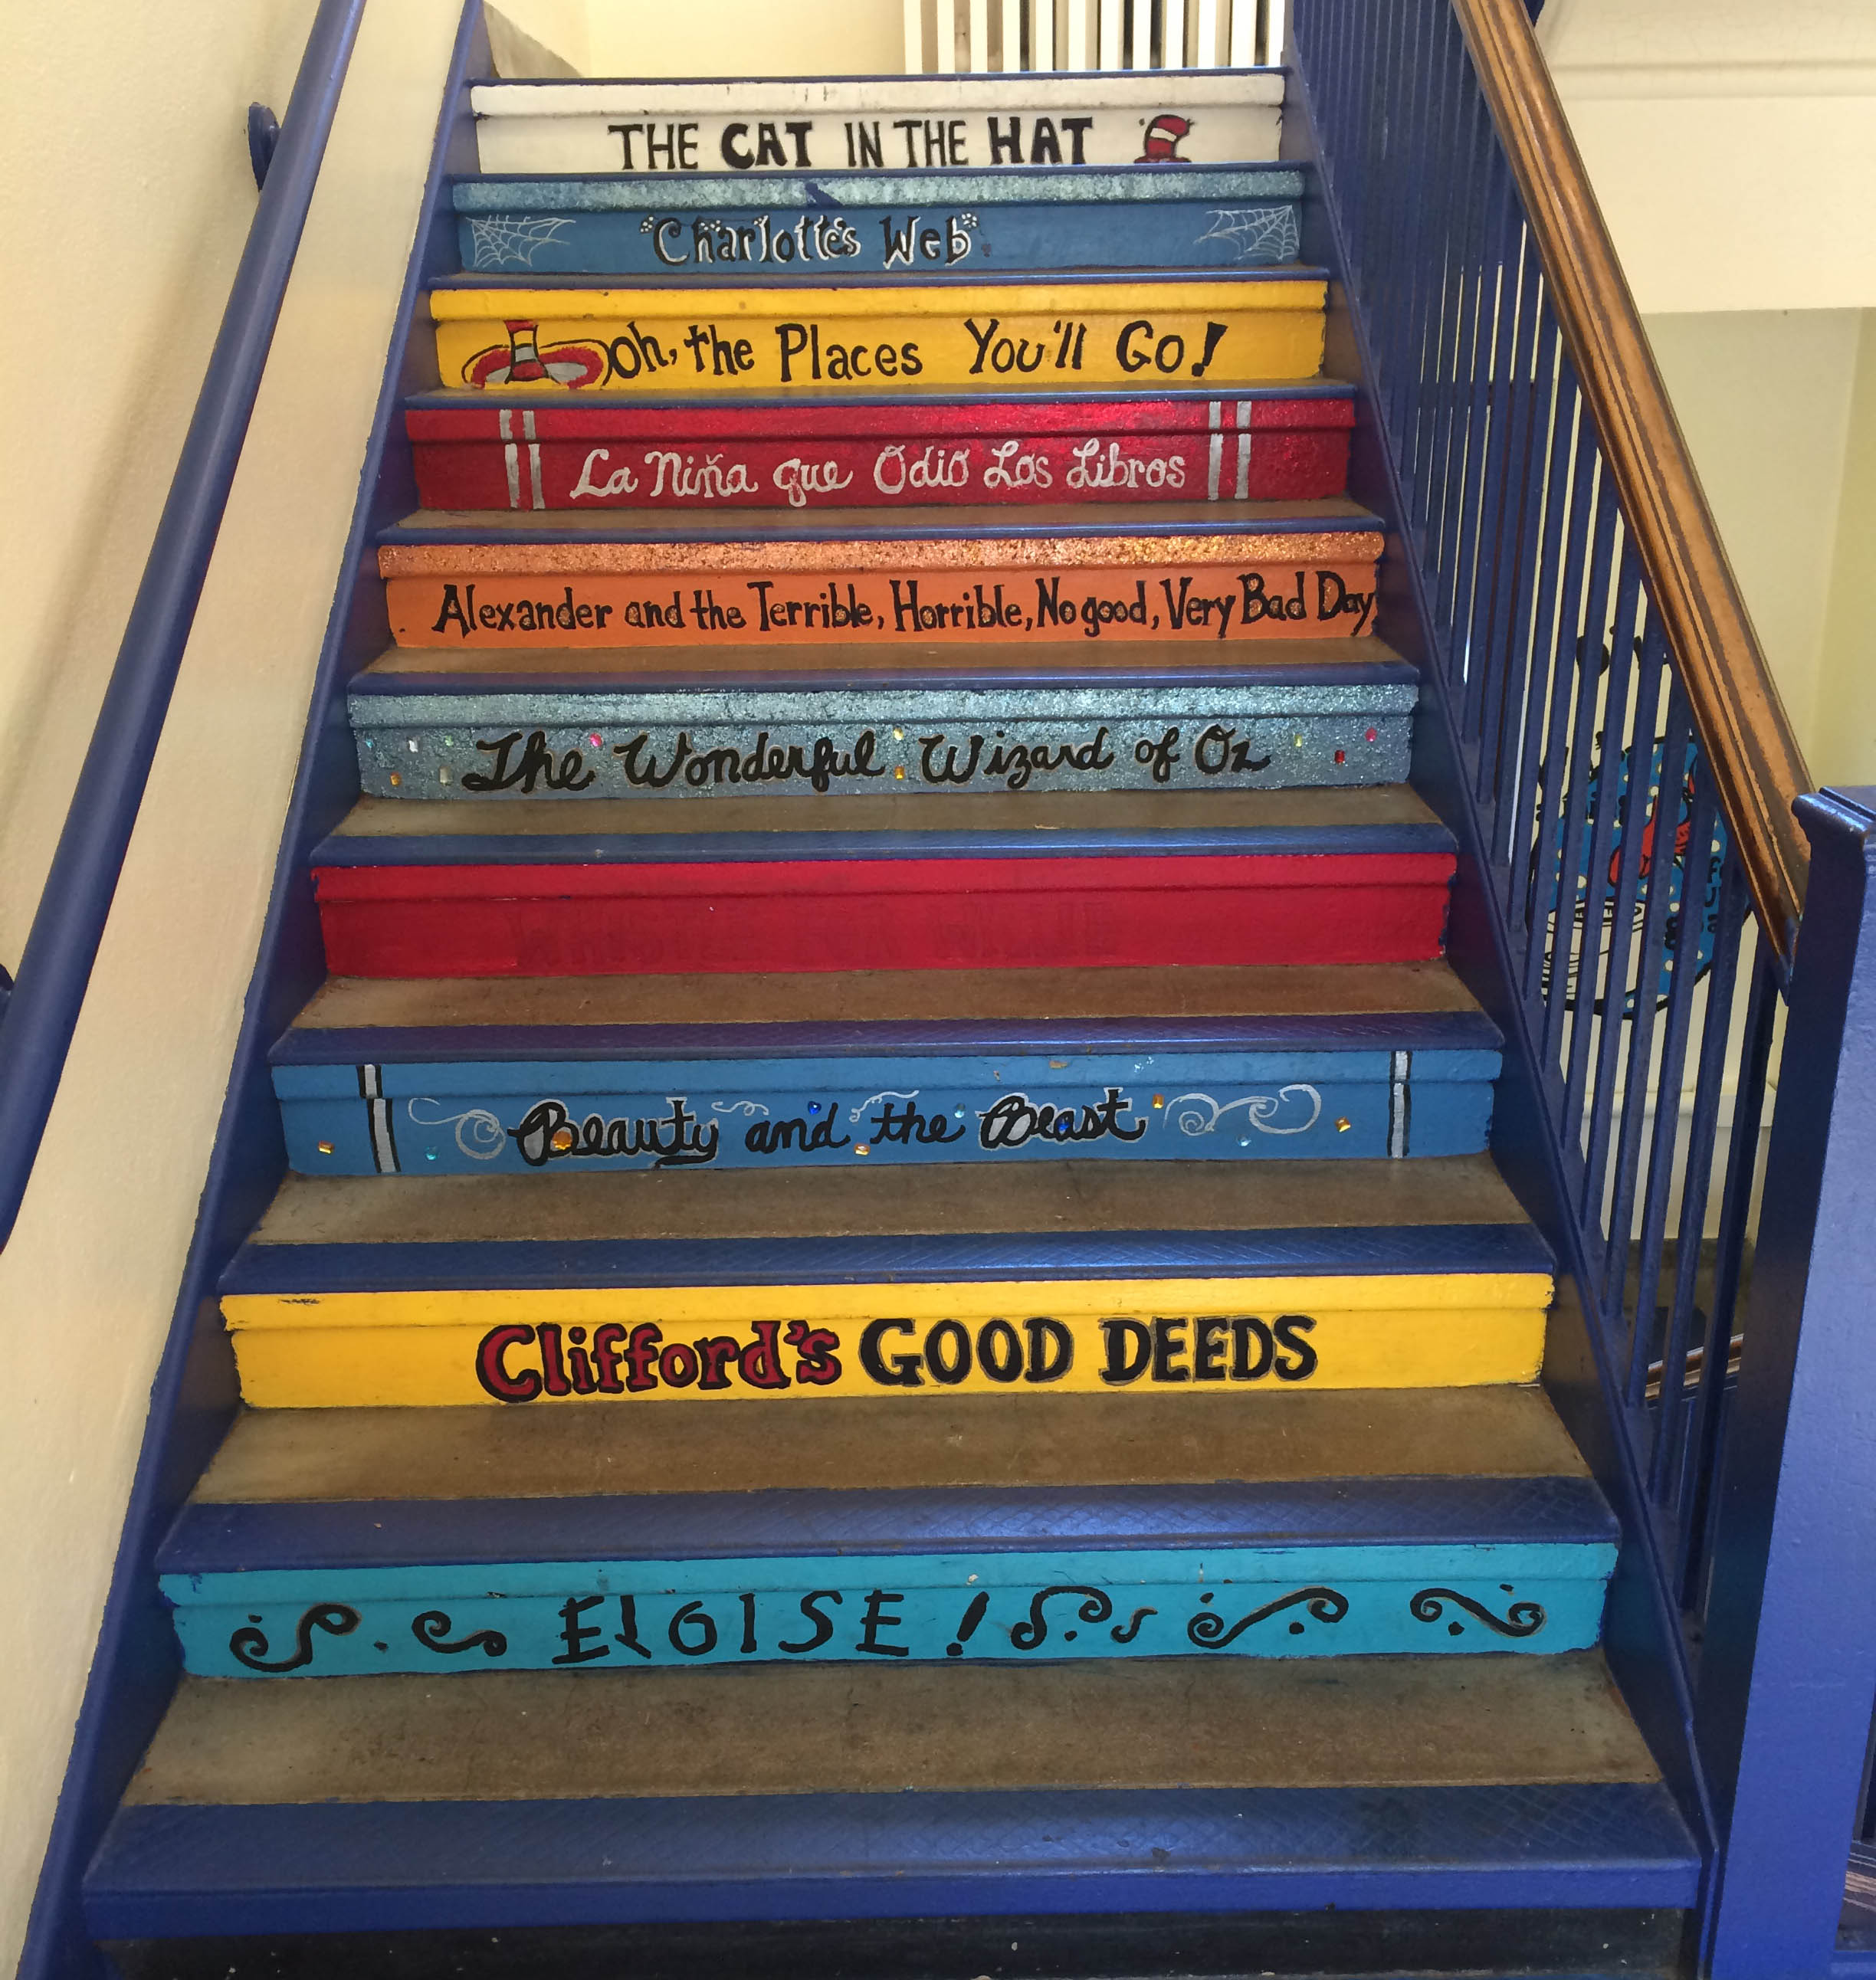 stairs with book titles